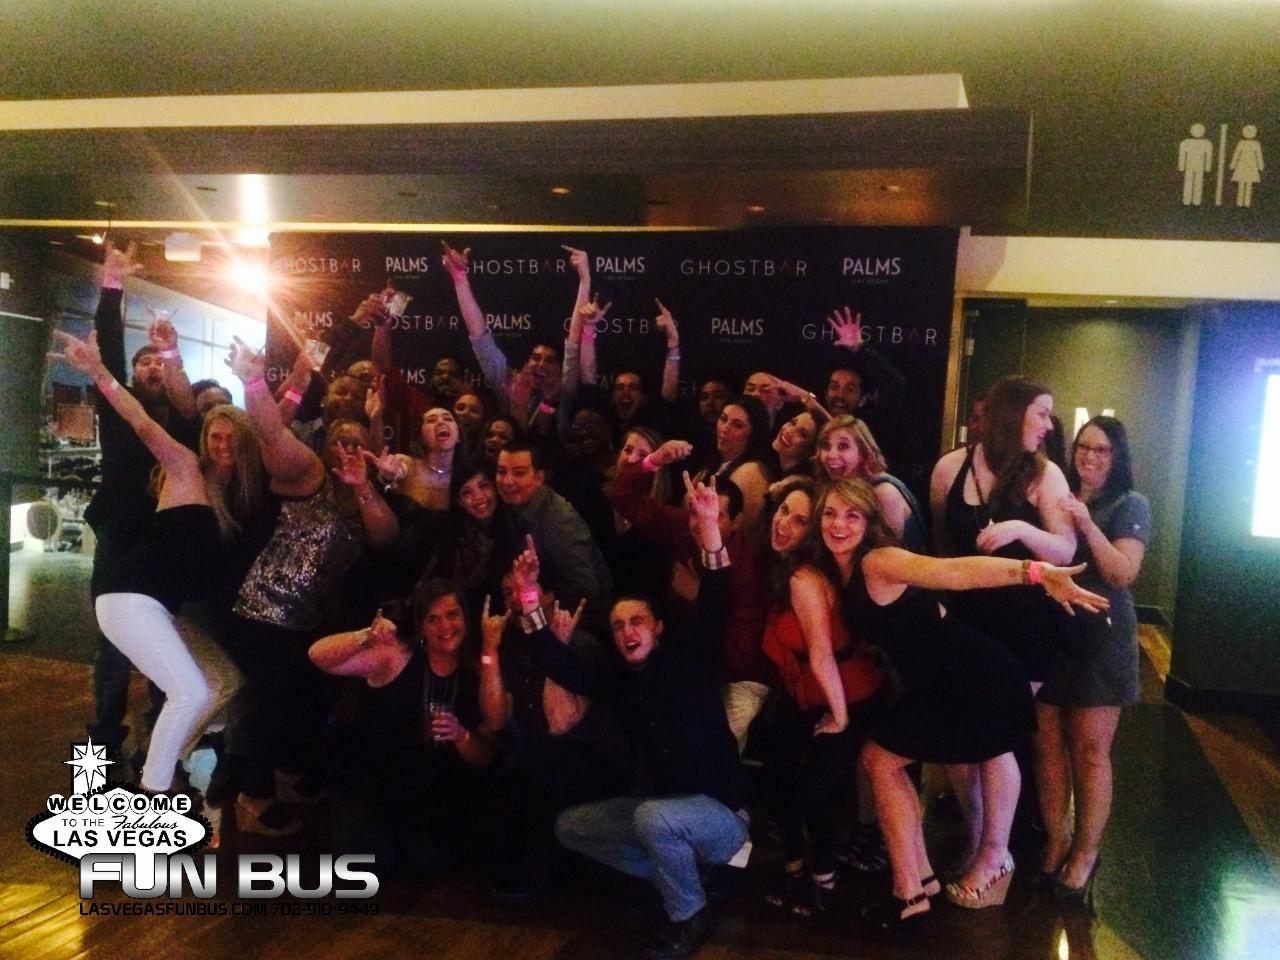 Las Vegas Fun Bus Nightclub Tour